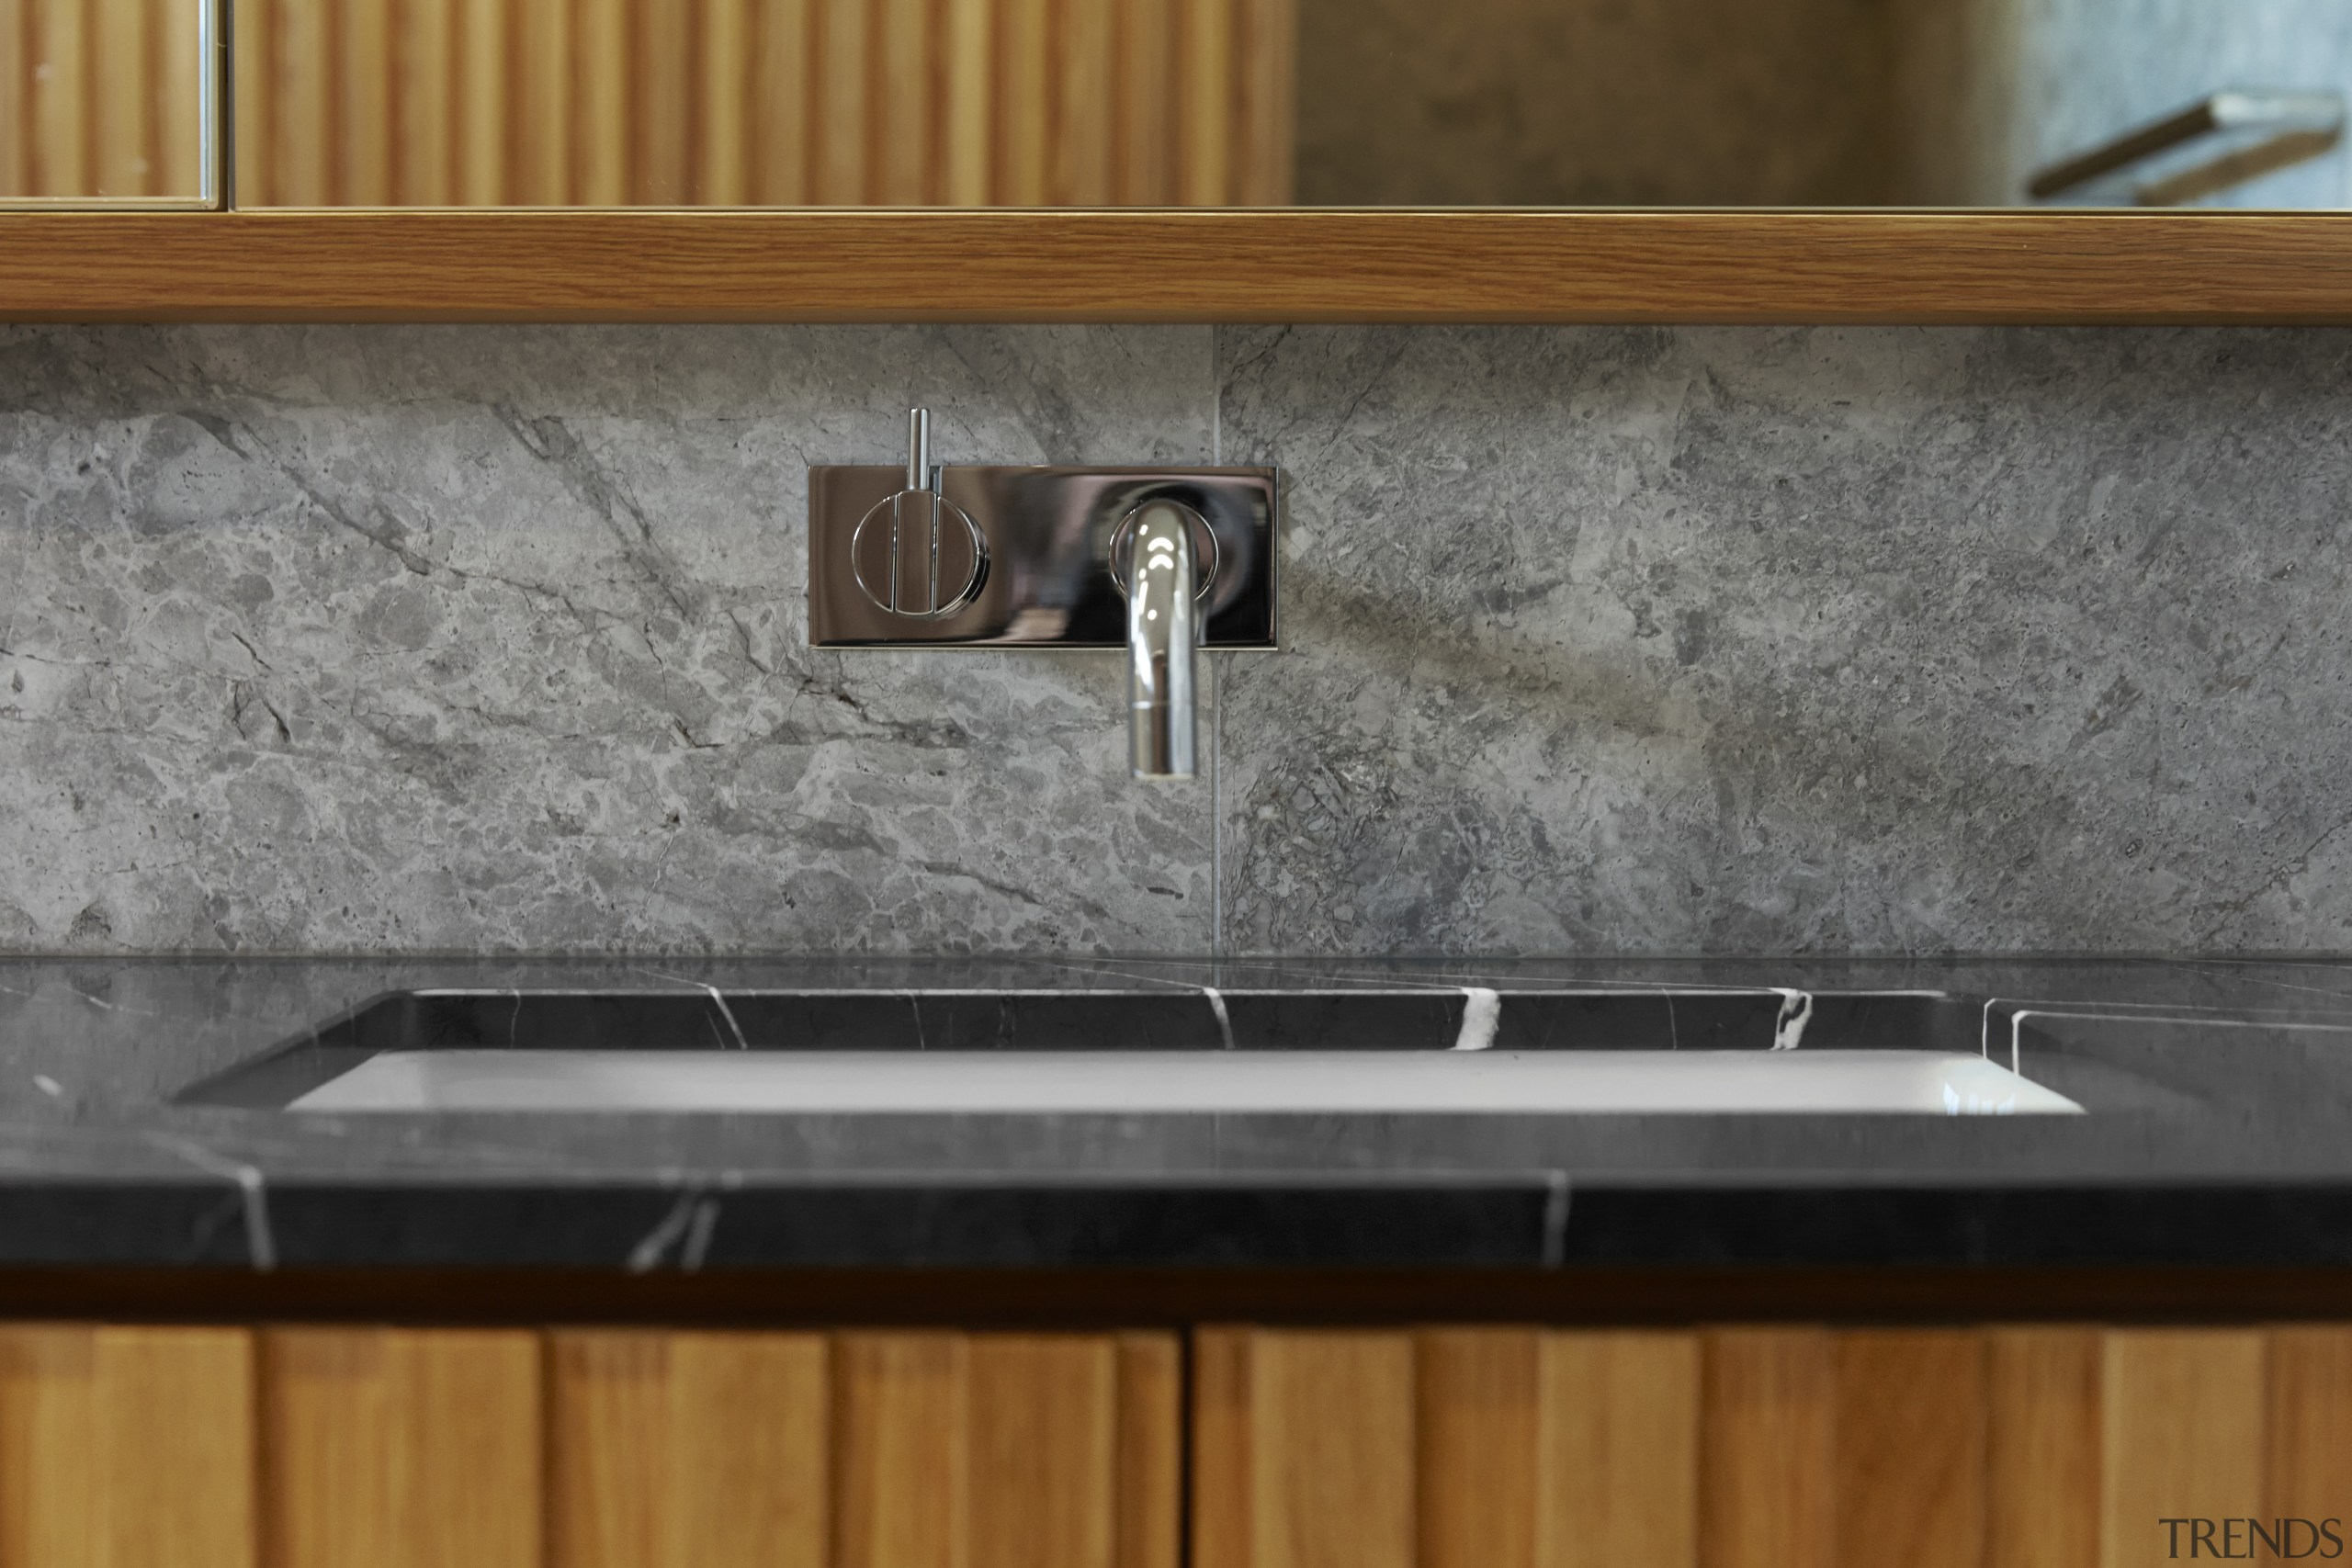 Vola tapware provides a timeless and simple look countertop, floor, granite, plumbing fixture, sink, tile, wood stain, gray, brown